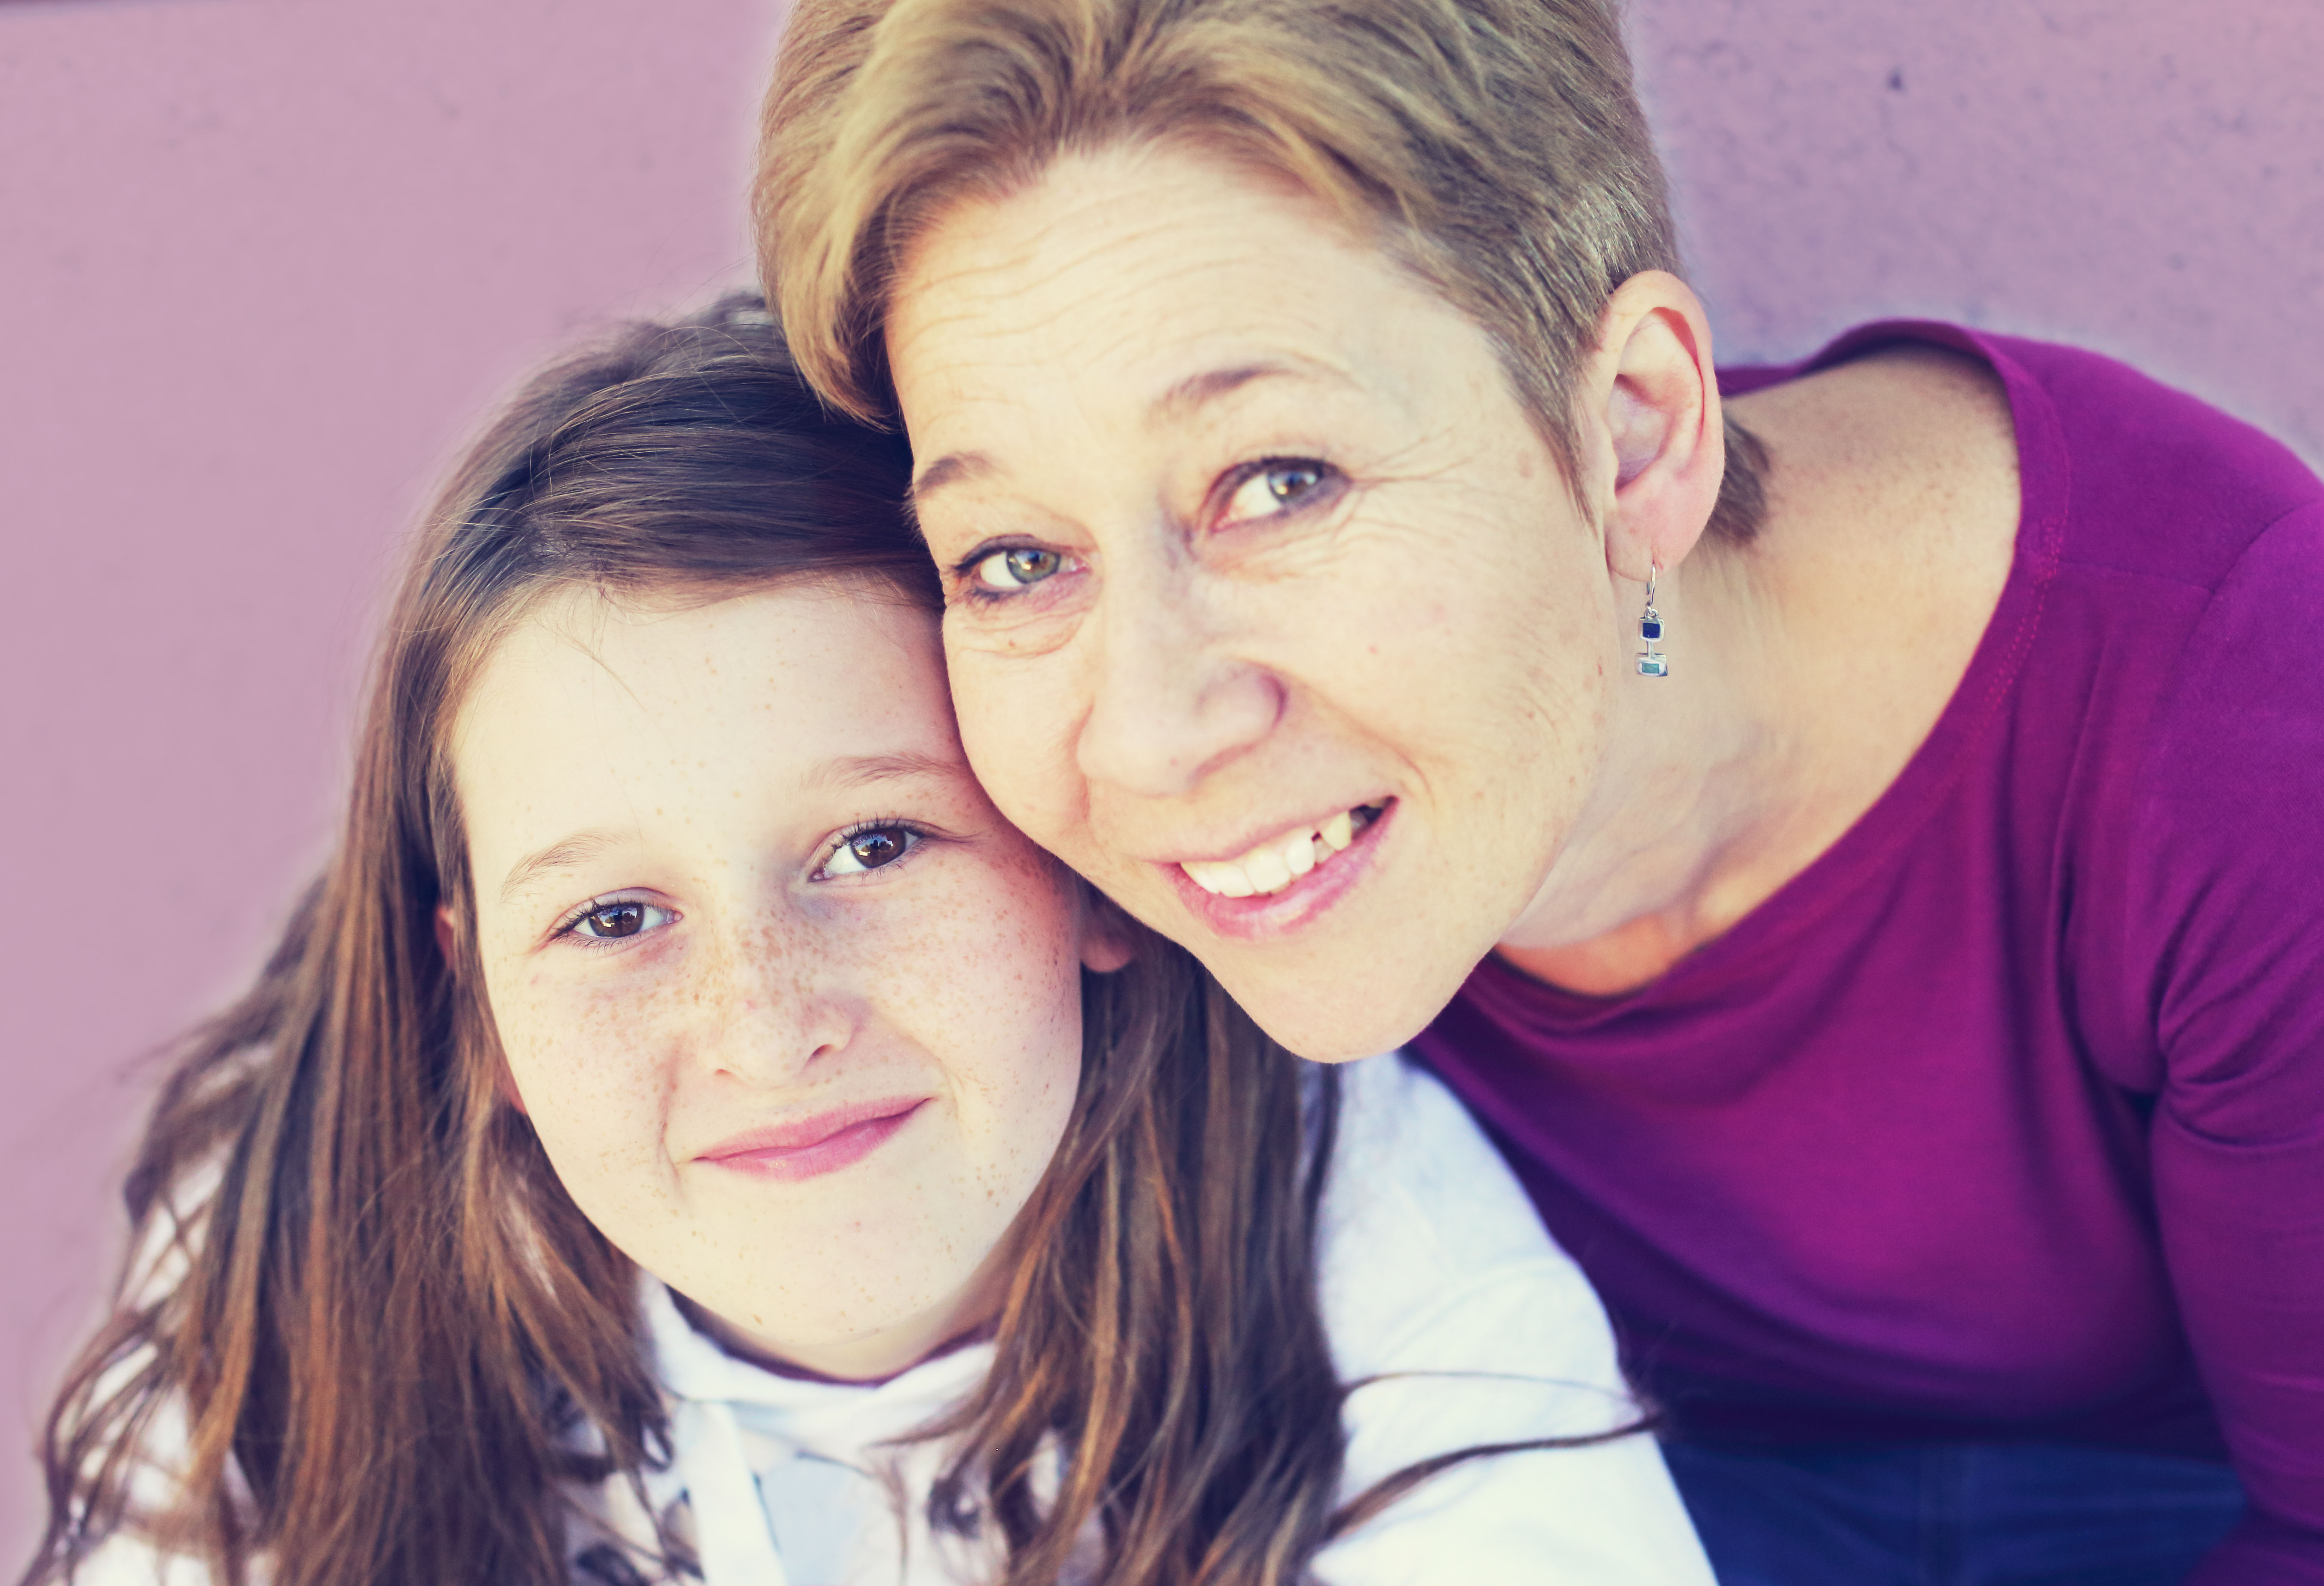 Helping Children Cope With Traumatic Events